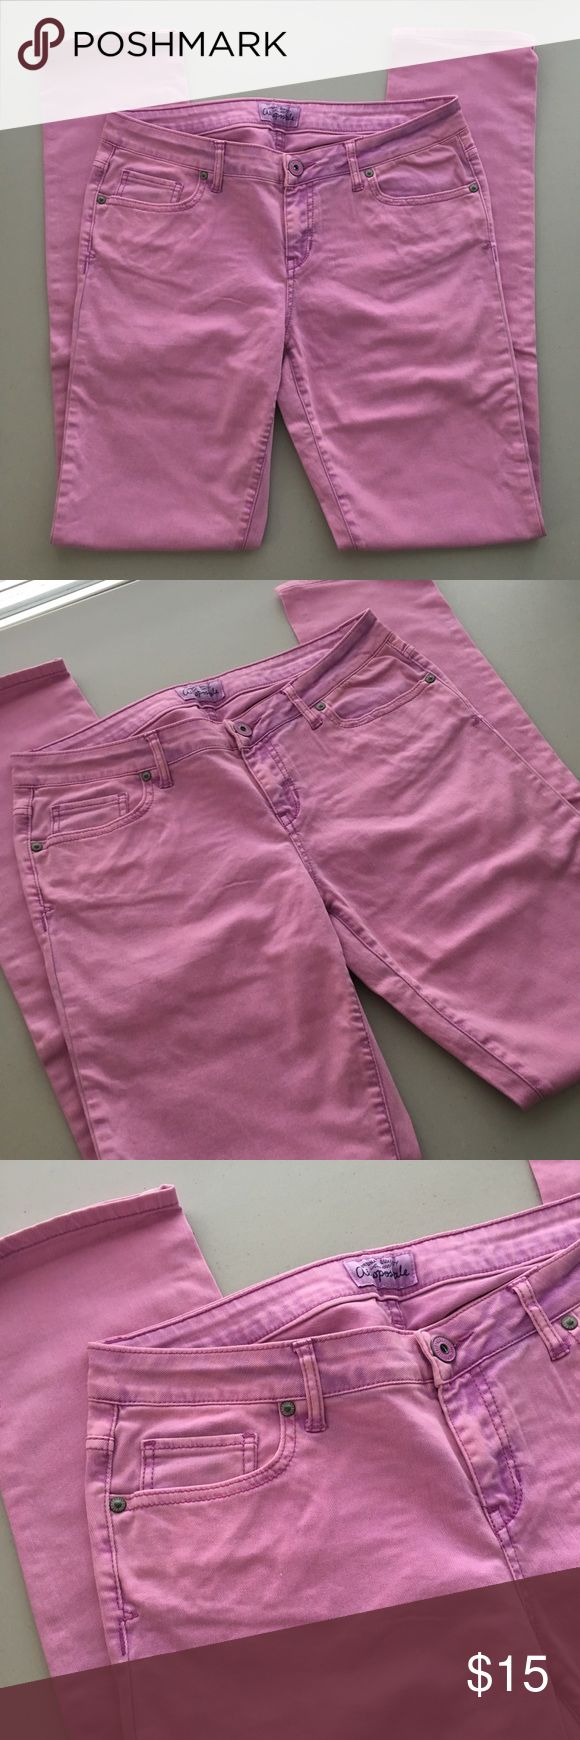 """PASTEL LAVENDER LILAC PURPLE SKINNY DENIM JEANS !! STUNNING & RARE Retro Vintage Older Early 00's 2000's 2000 Y2K Era Aeropostale Cute Kawaii Pastel Goth Lolita Bright Lavender Lilac Purple-Pink Skinny Fitted Denim Jeans Jean Pants. 😈💓😈💗💯  Brand new. Never used. NO flaws.  MSRP: $49.50  Tagged as Women's 11/12, long length. *CHECK ACTUAL MEASUREMENTS BELOW*  •Waist- 16"""" across •Rise (crotch to waist)- roughly 8.5"""" high •Inseam (crotch to bottom hem)- 32.5"""" long  98% cotton + 2% spandex…"""